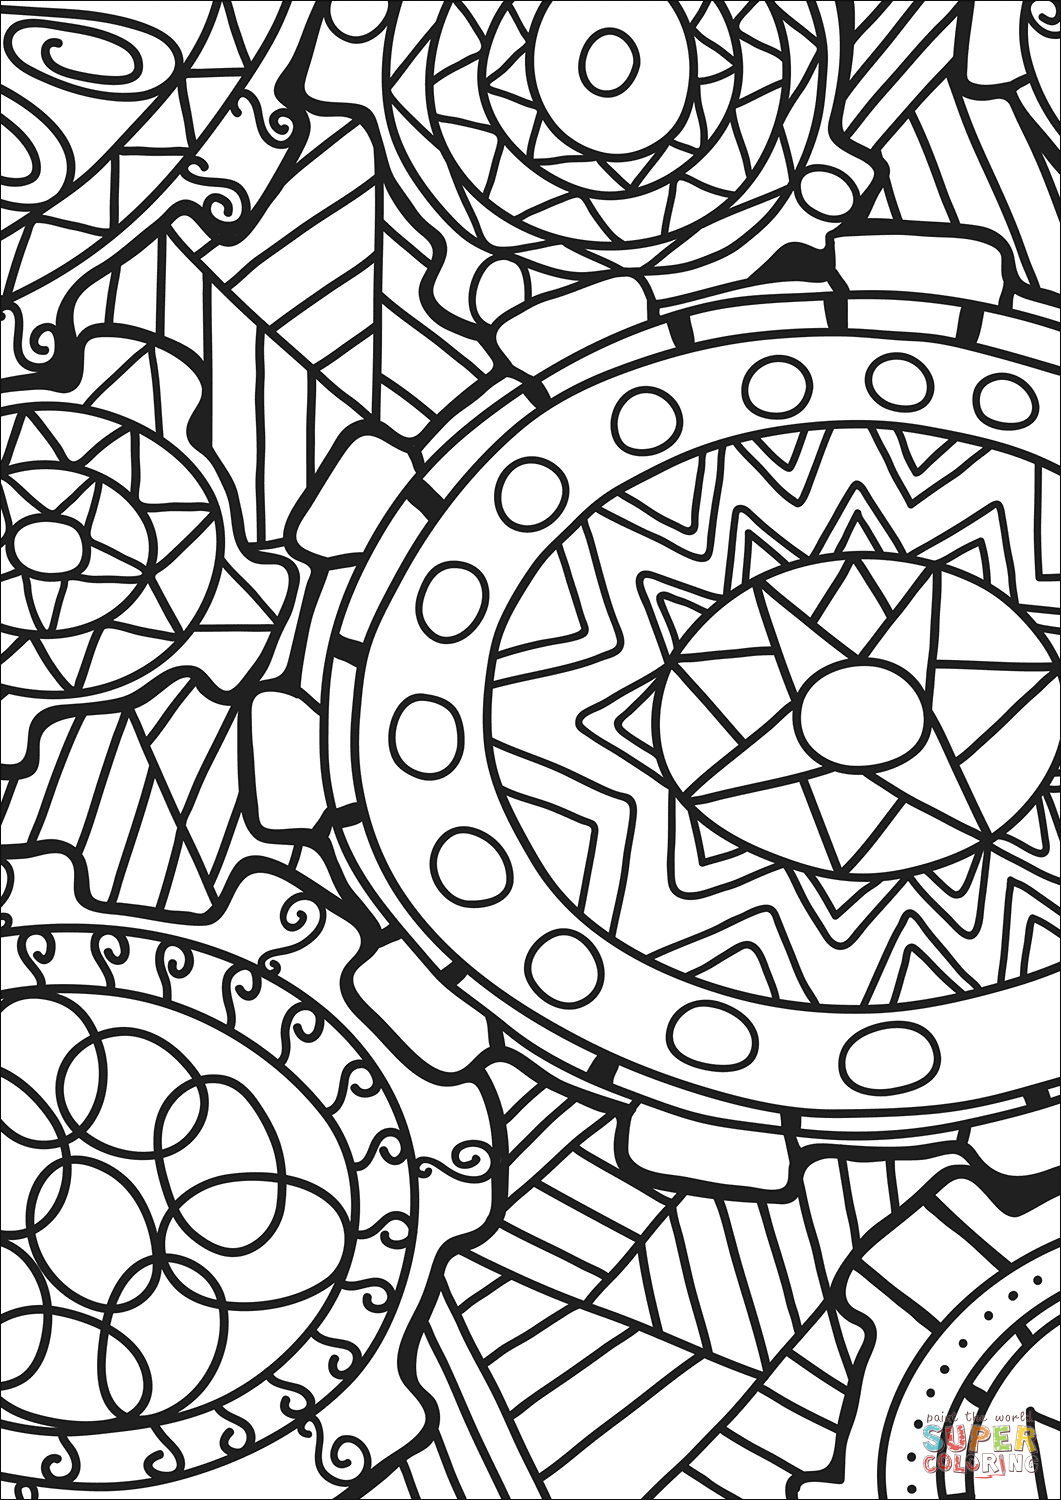 abstract coloring pages to print abstract doodle coloring page free printable coloring pages coloring to print pages abstract